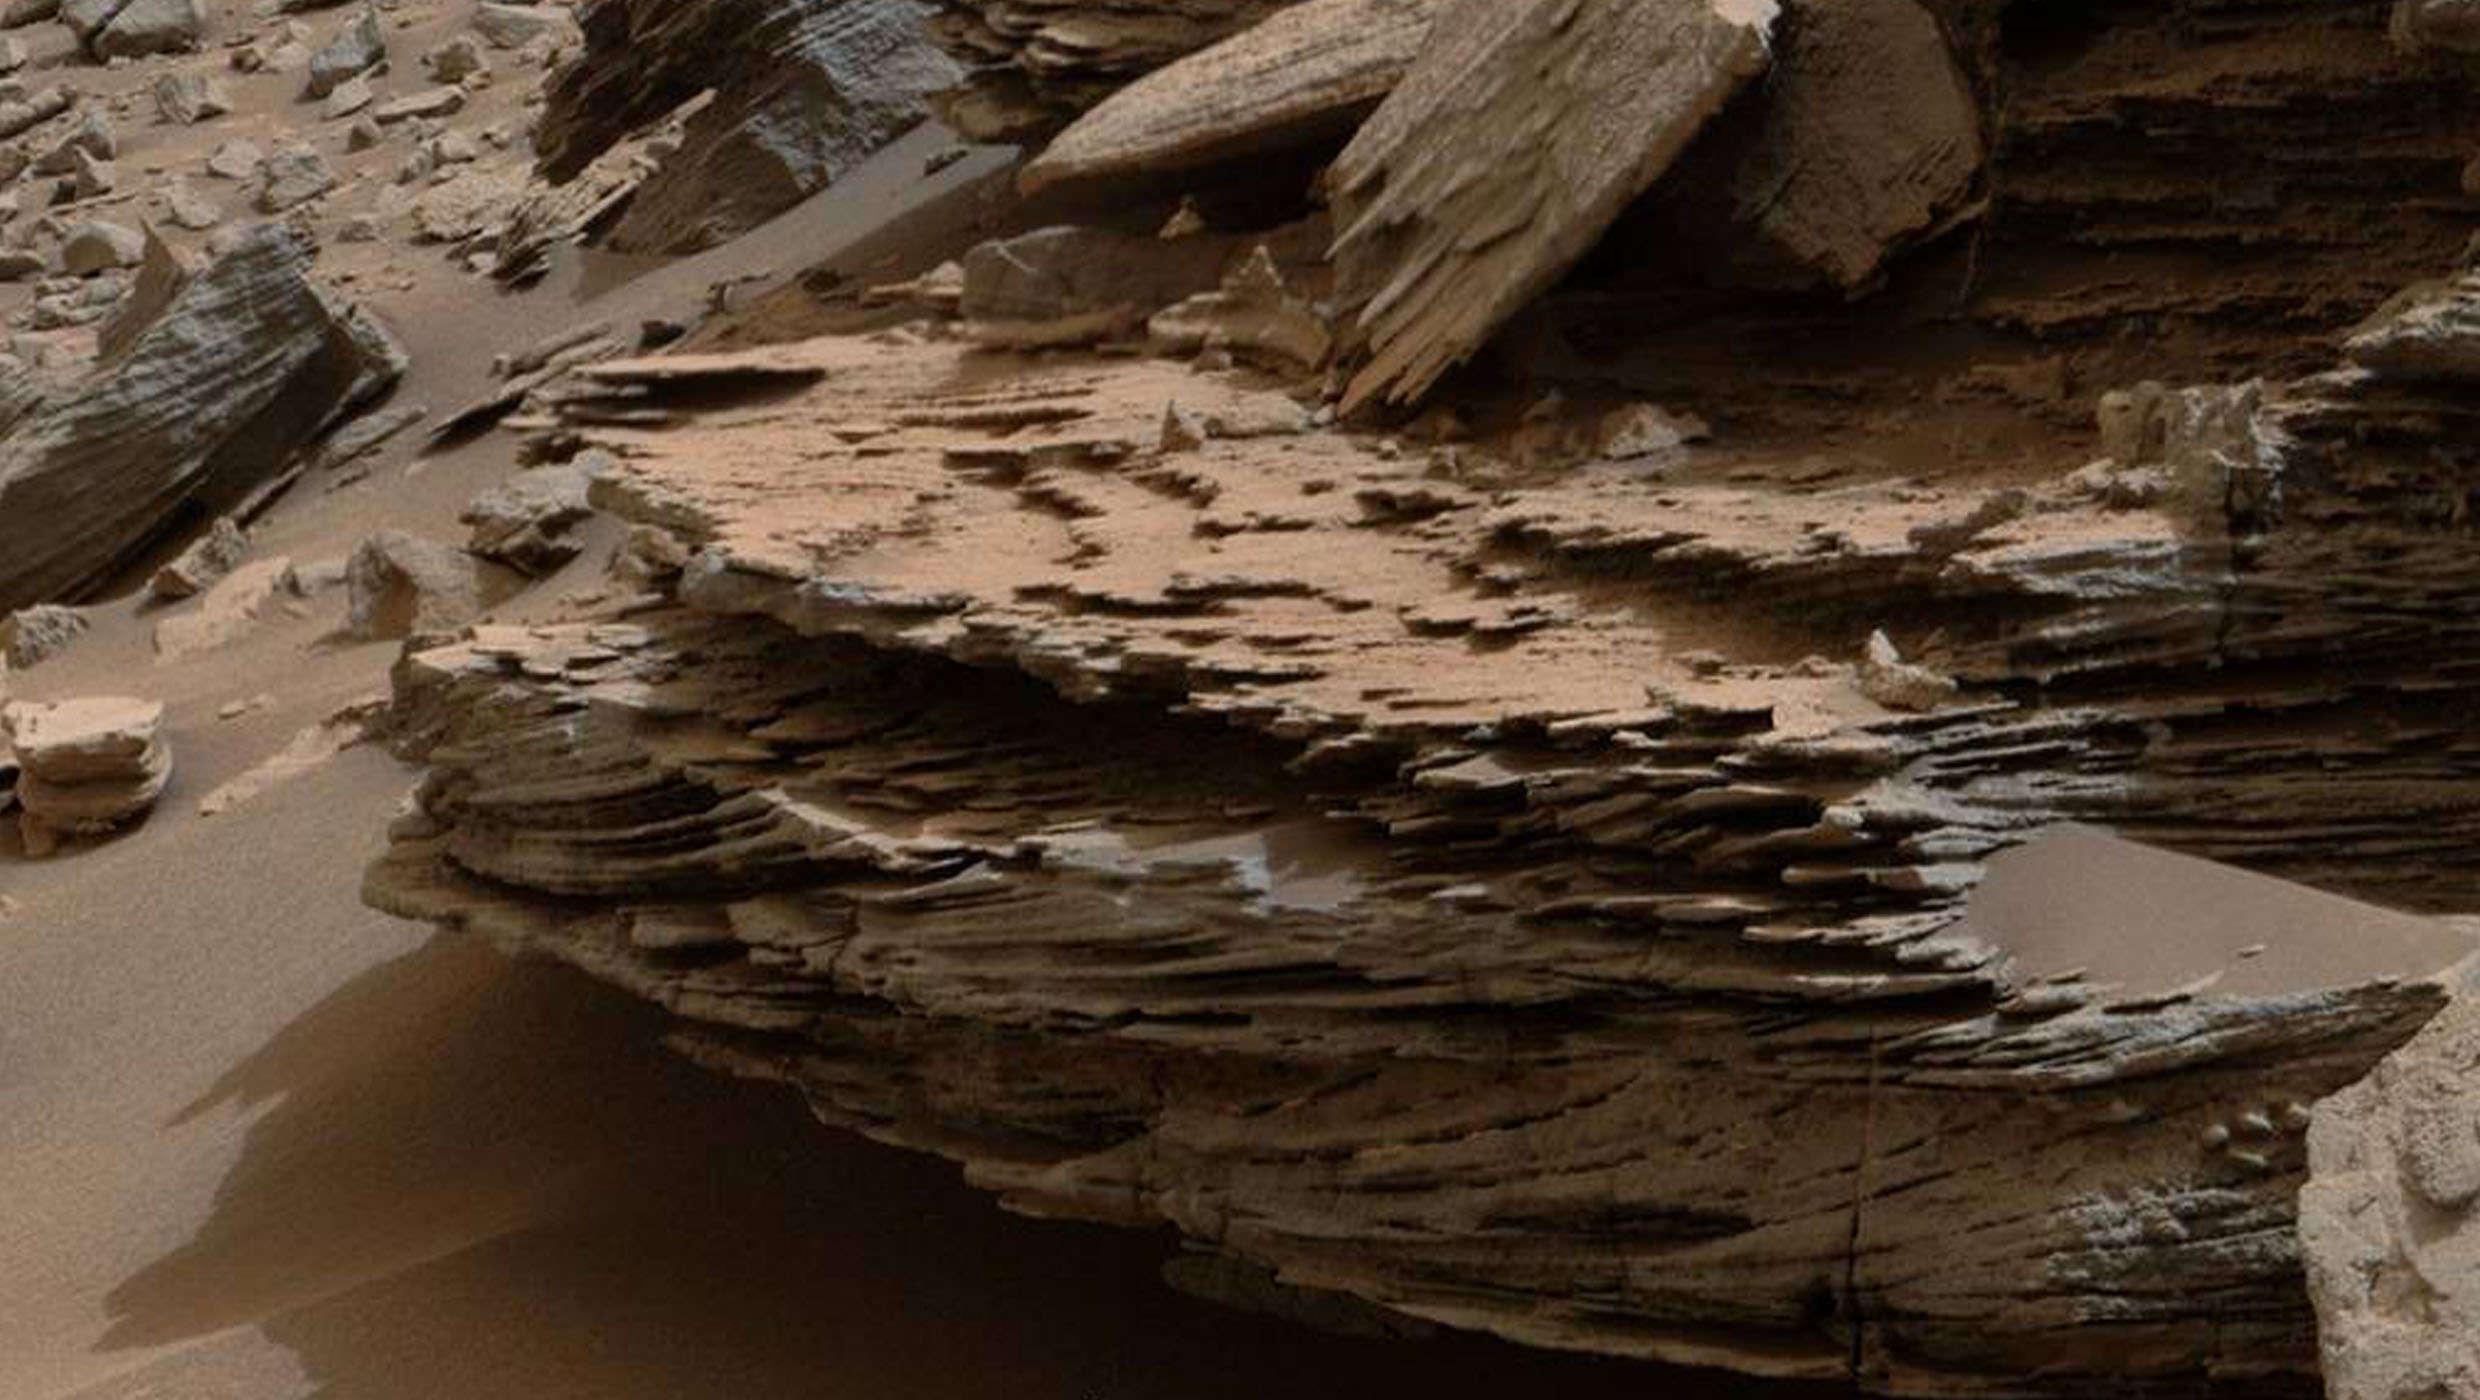 Is there life on Mars…at least in fossil form?